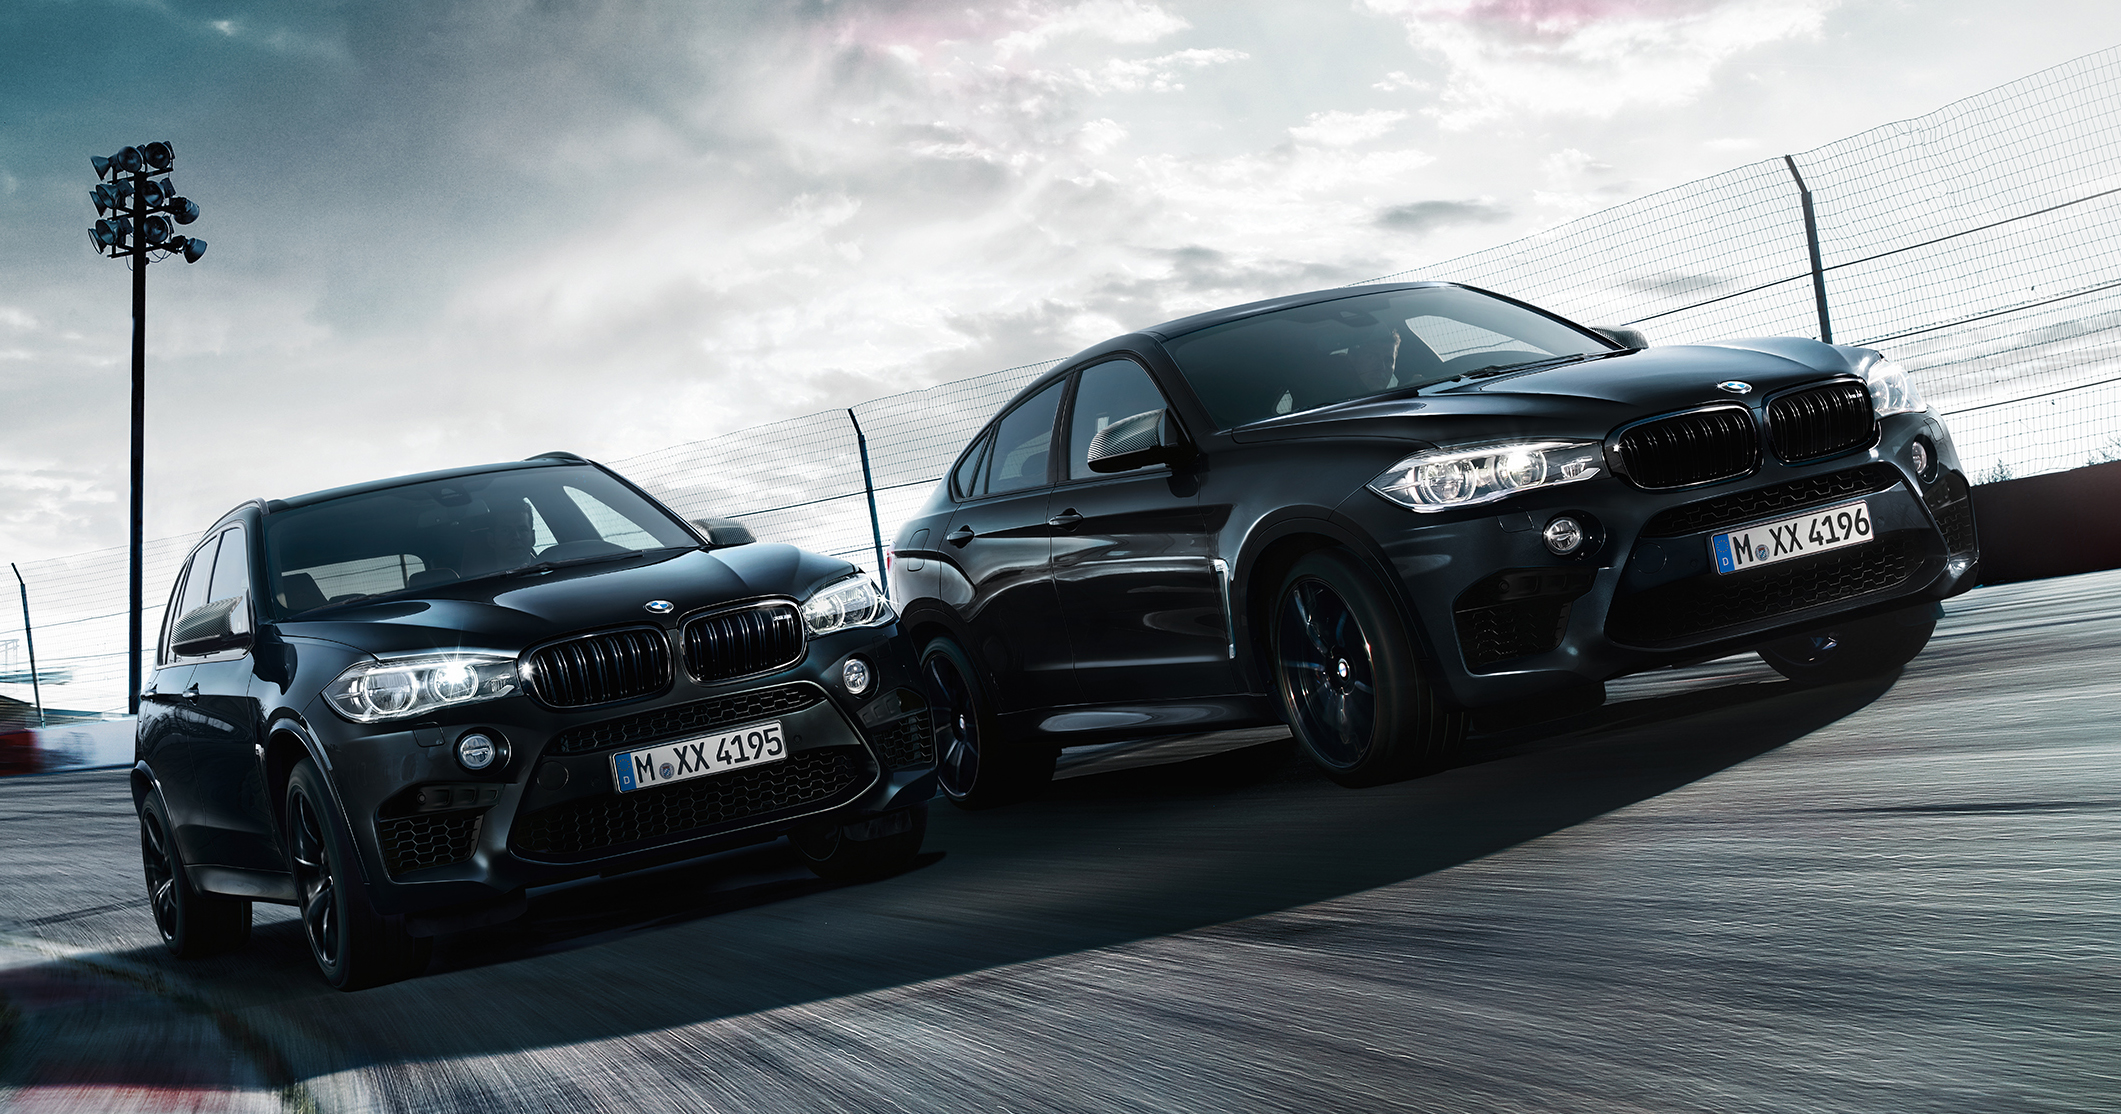 Bmw X5 M And X6 M Black Fire Editions Unveiled Paul Tan